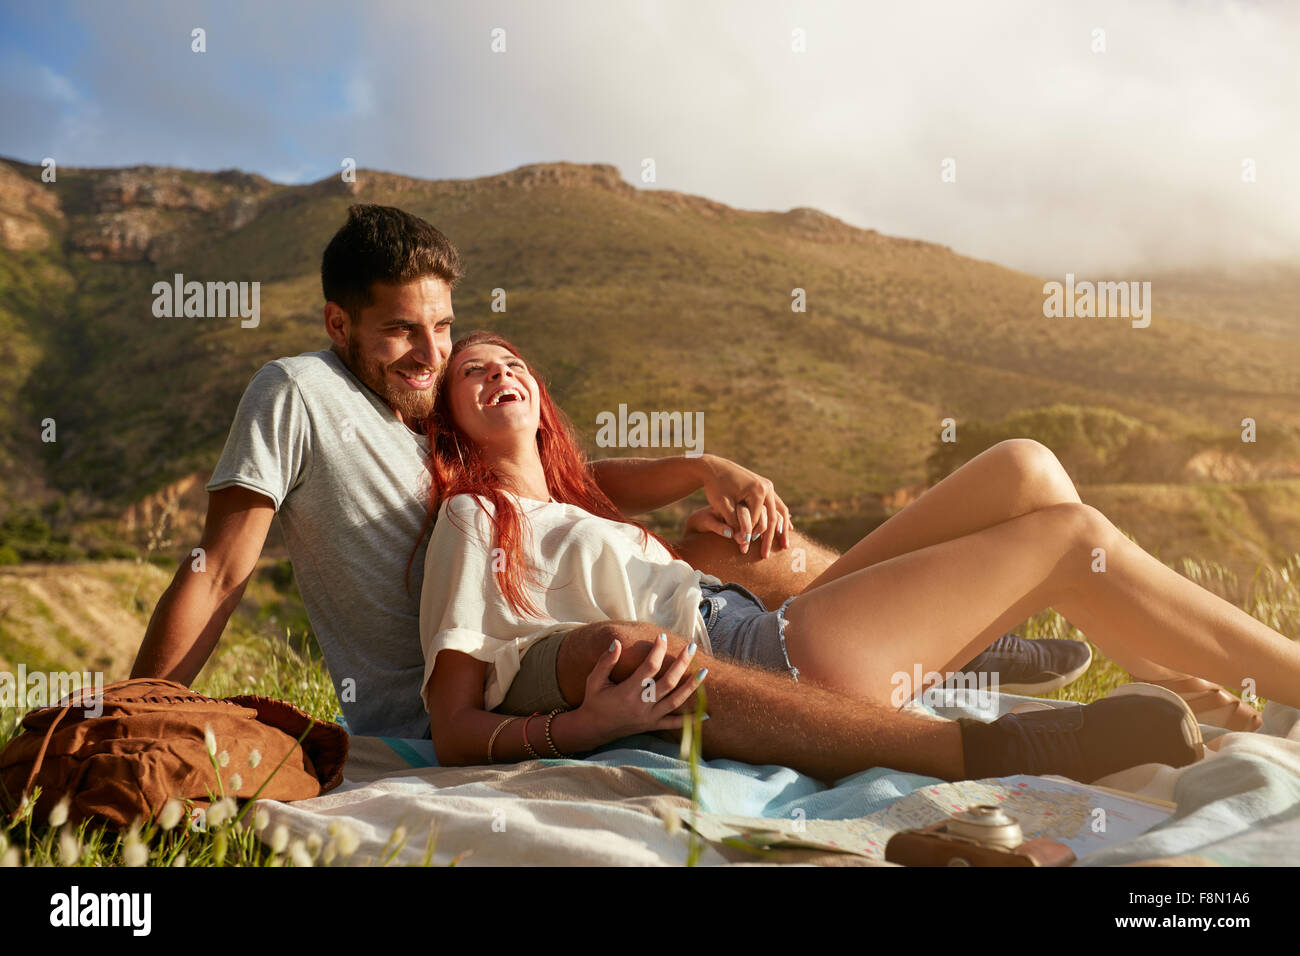 Portrait of a cute young couple sitting together and smiling. Young man and woman ion summer vacation. Enjoying - Stock Image